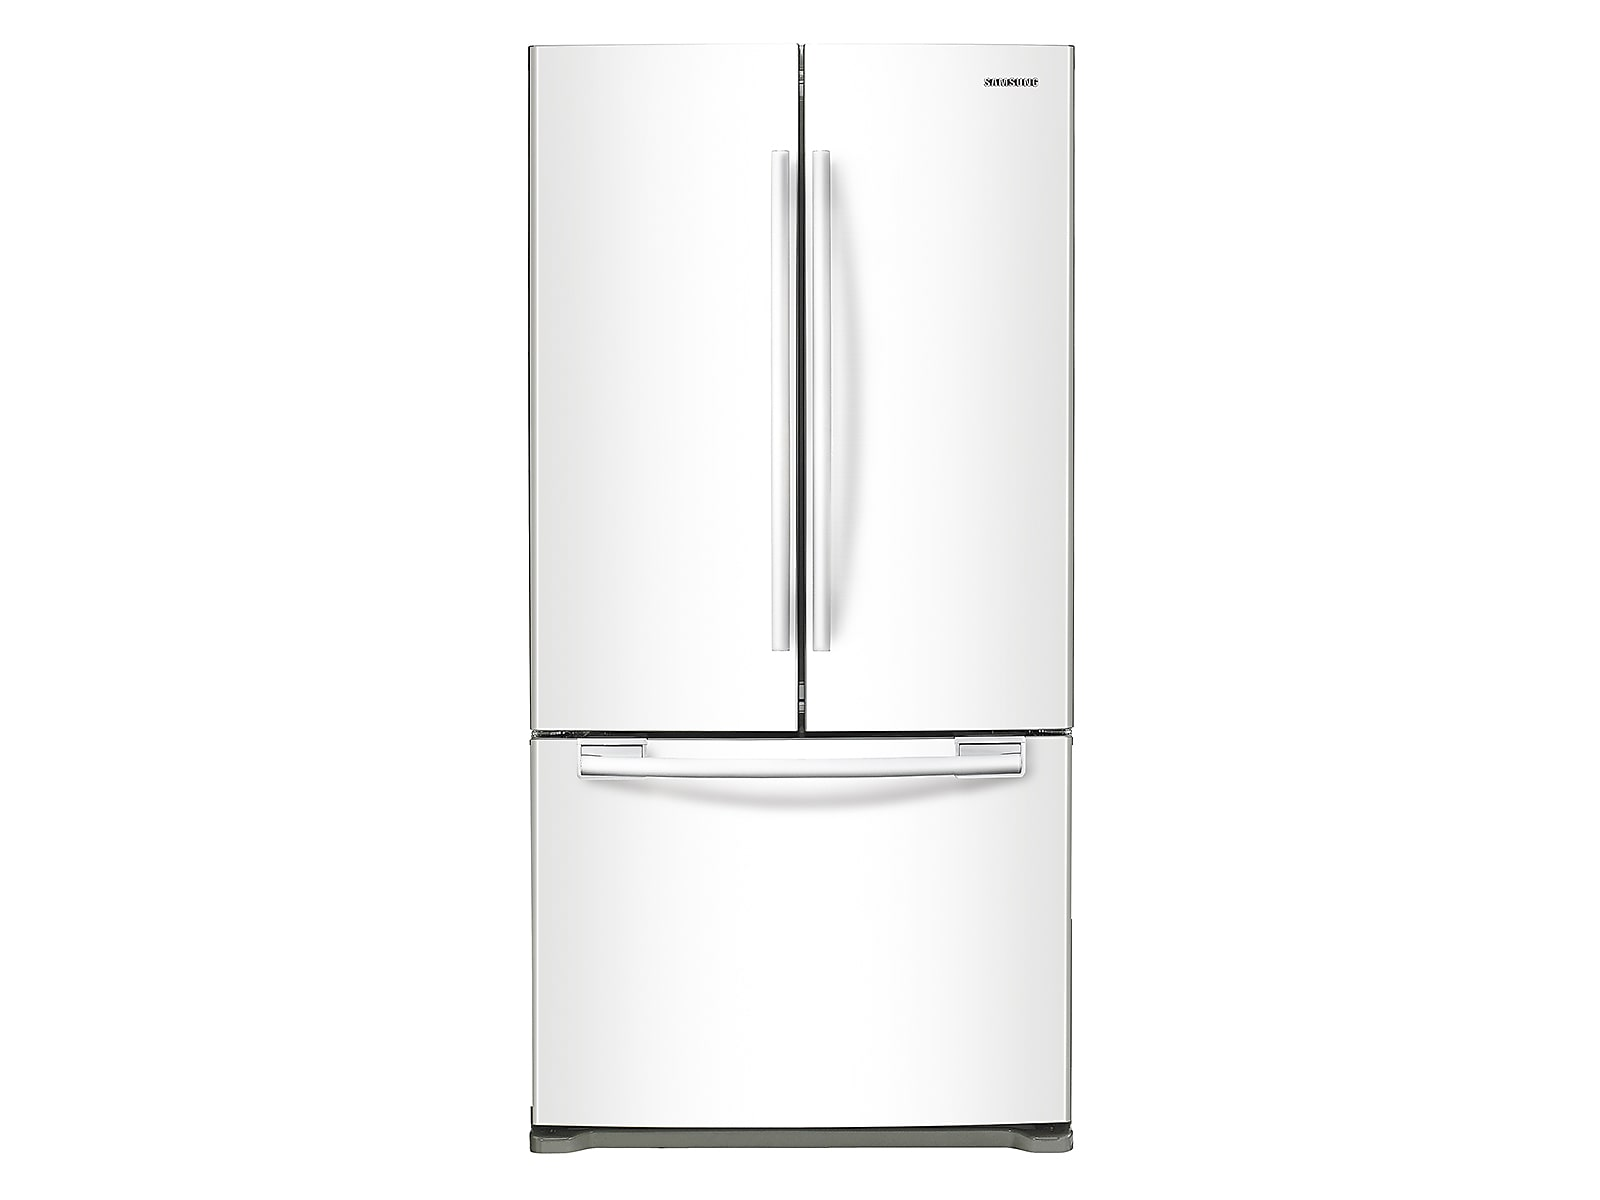 Samsung 18 cu. ft. Counter Depth French Door Refrigerator in Stainless Platinum(RF18HFENBWW/US)